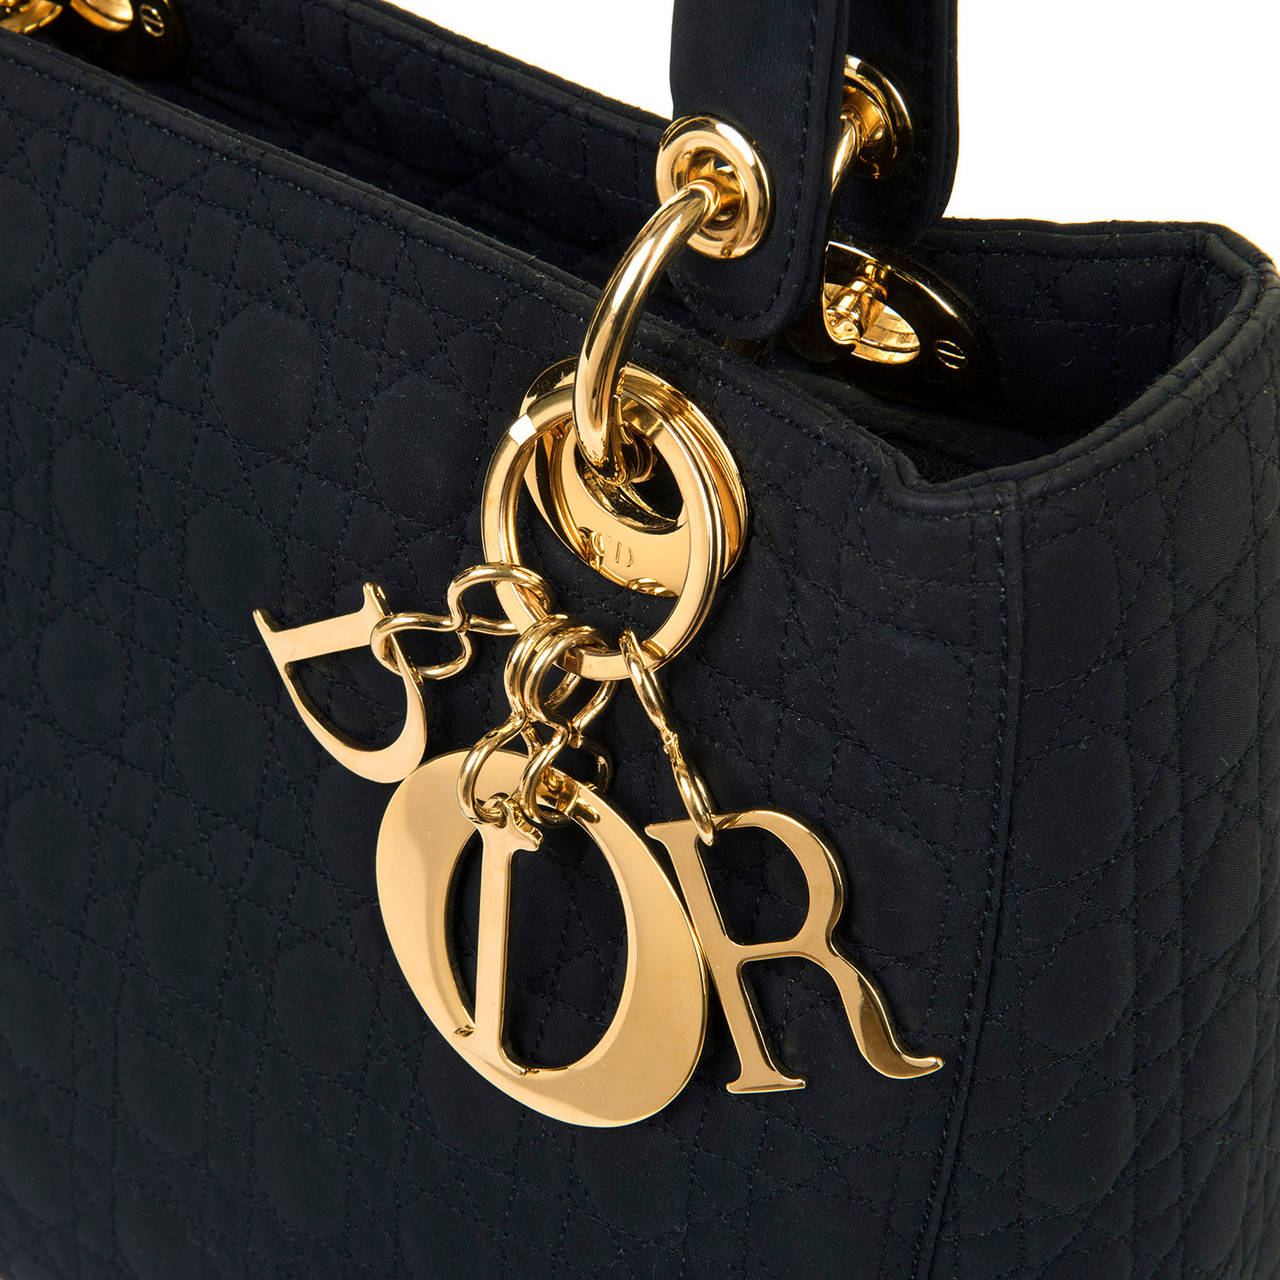 WOW! Dior 'Lady Dior' 25cm Black Quilted Bag with Goldtone Hardware 3